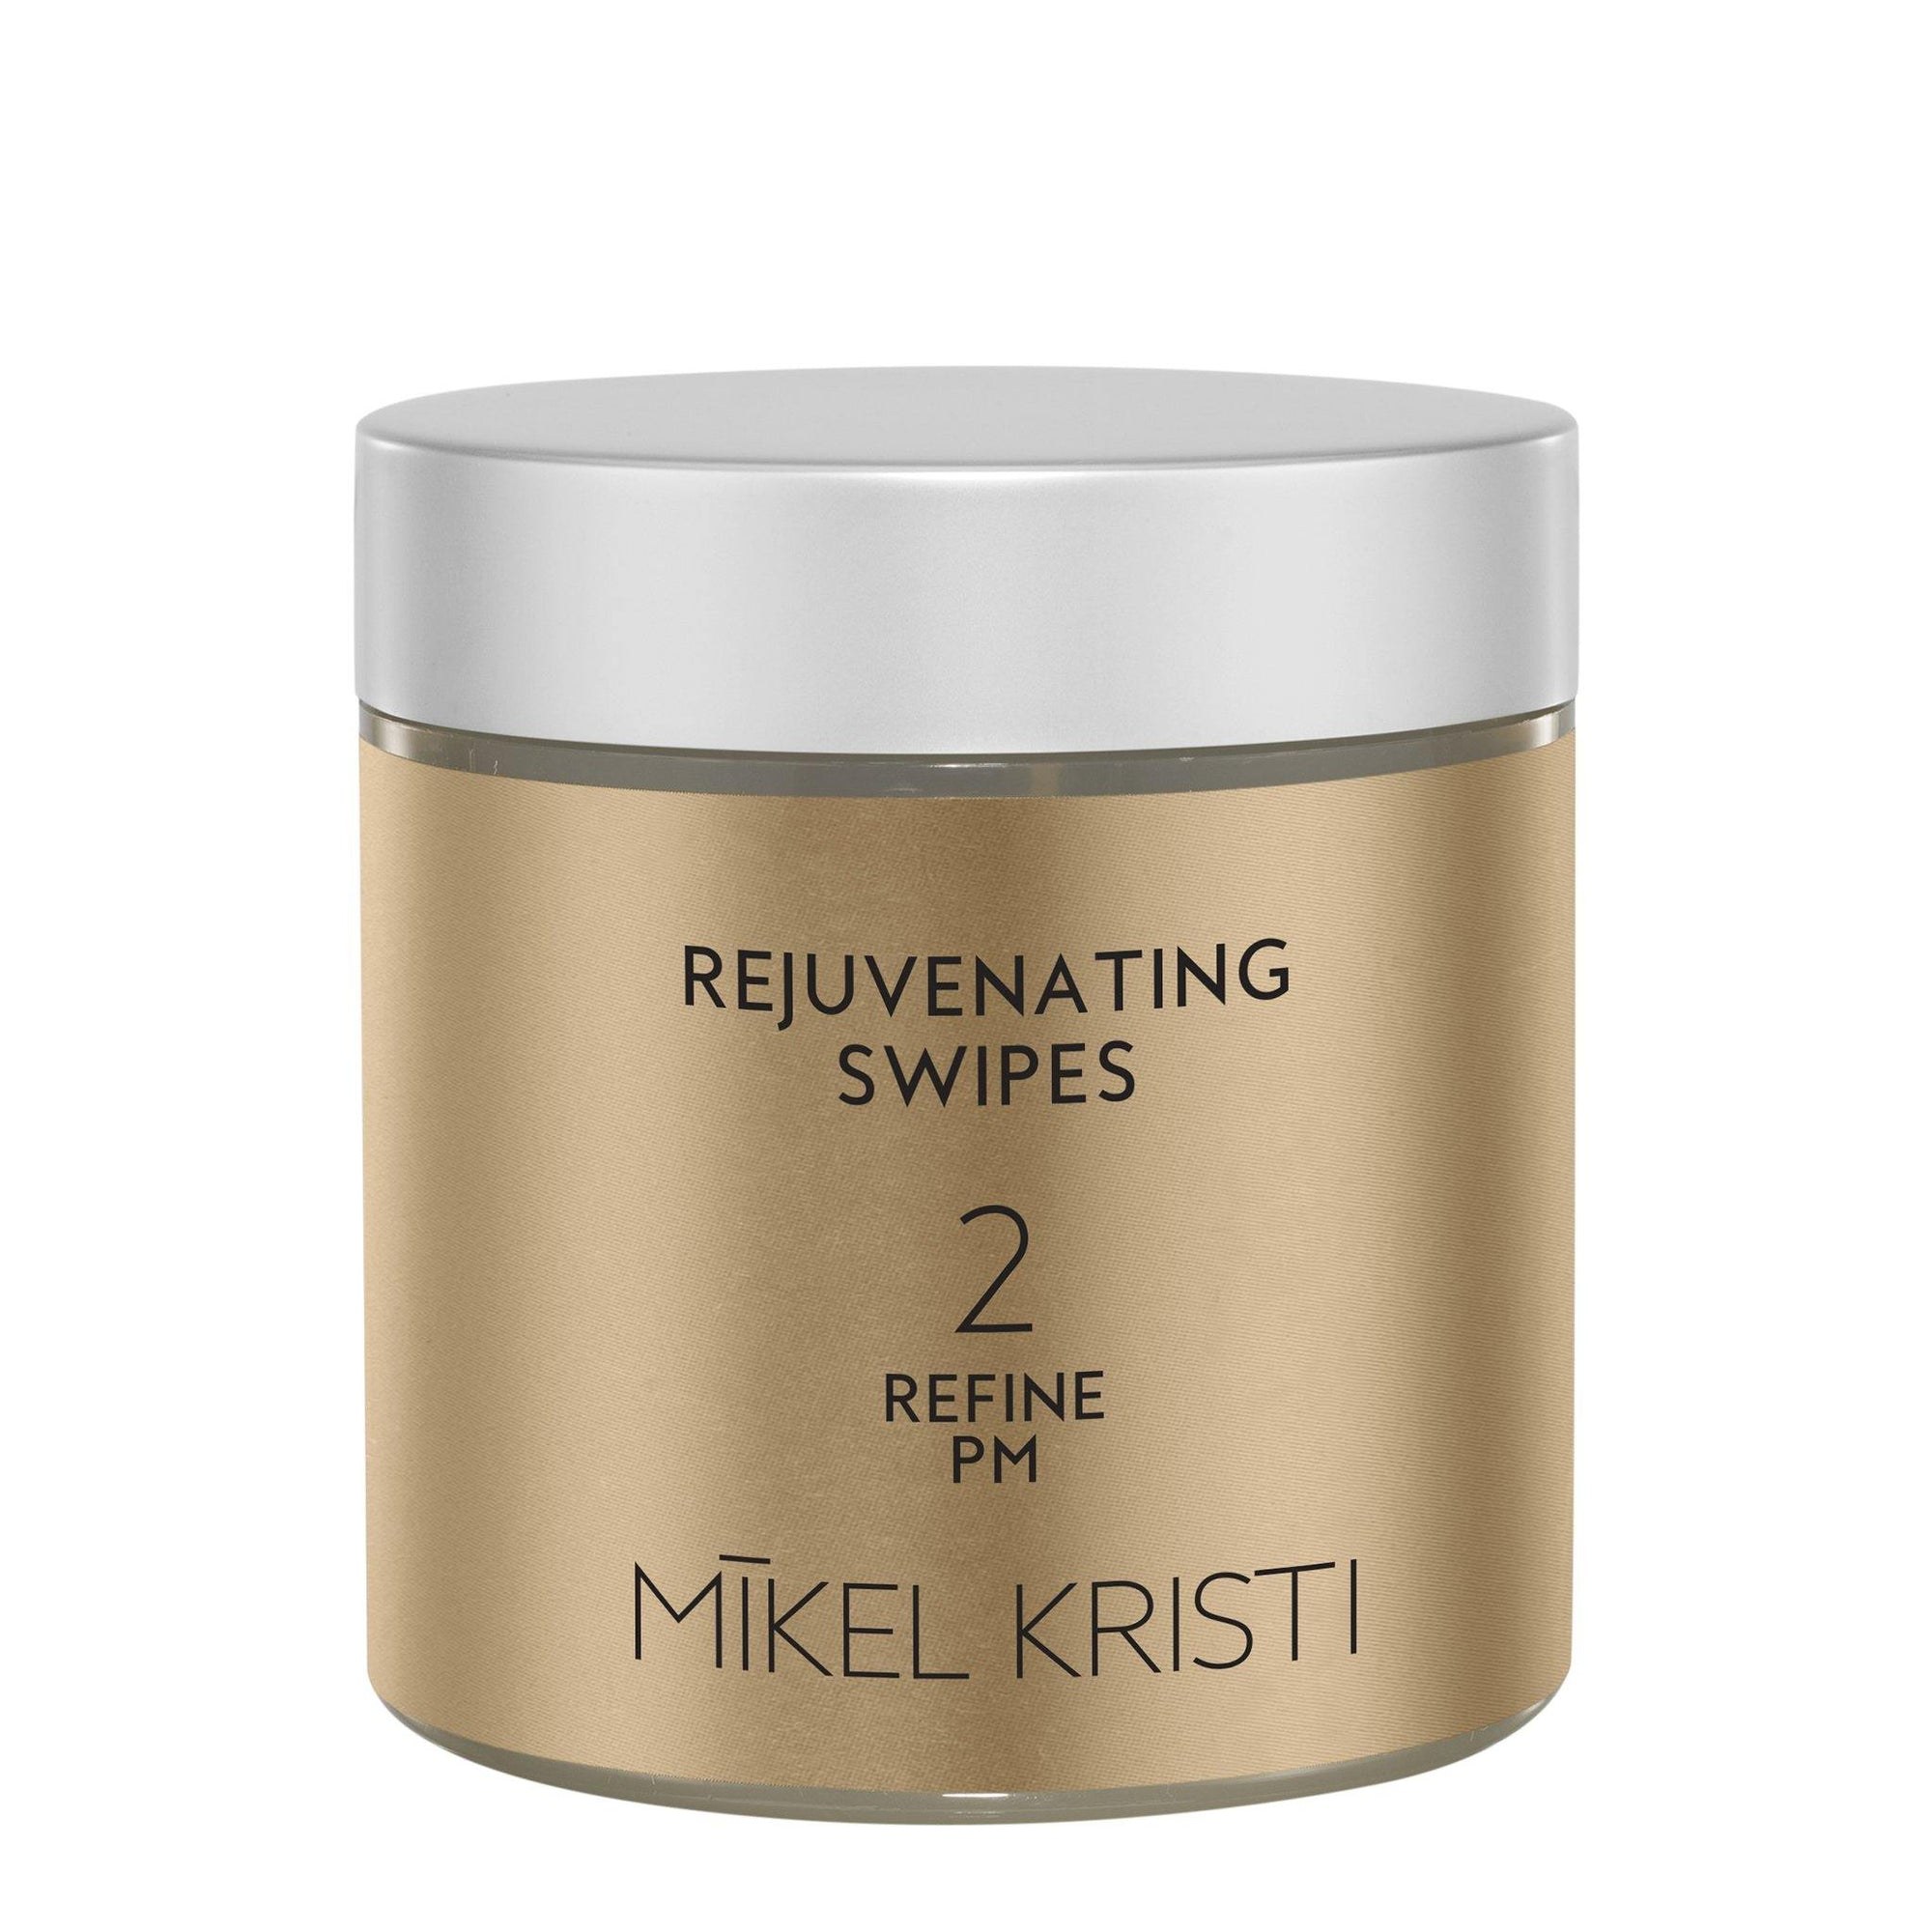 Rejuvenating Swipes - Mikel Kristi